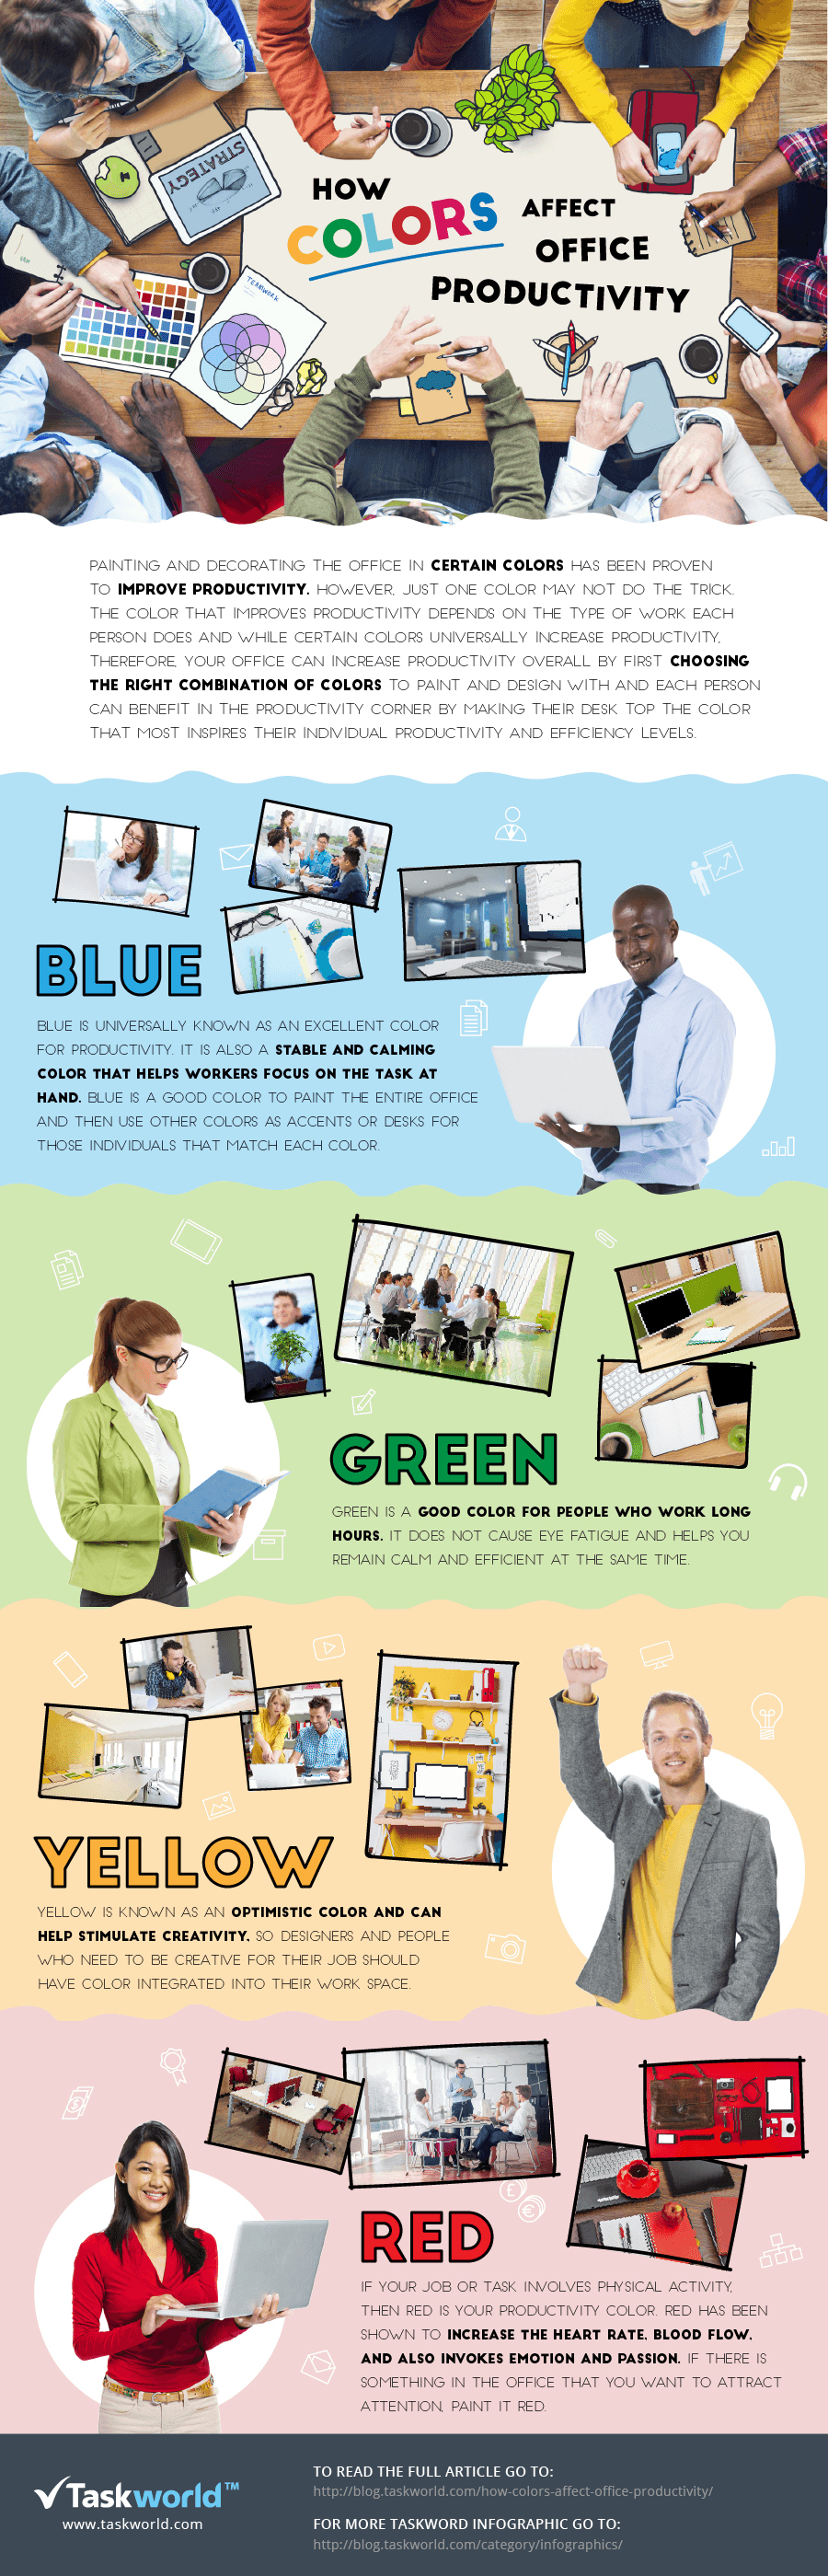 coloring the workplace infographic